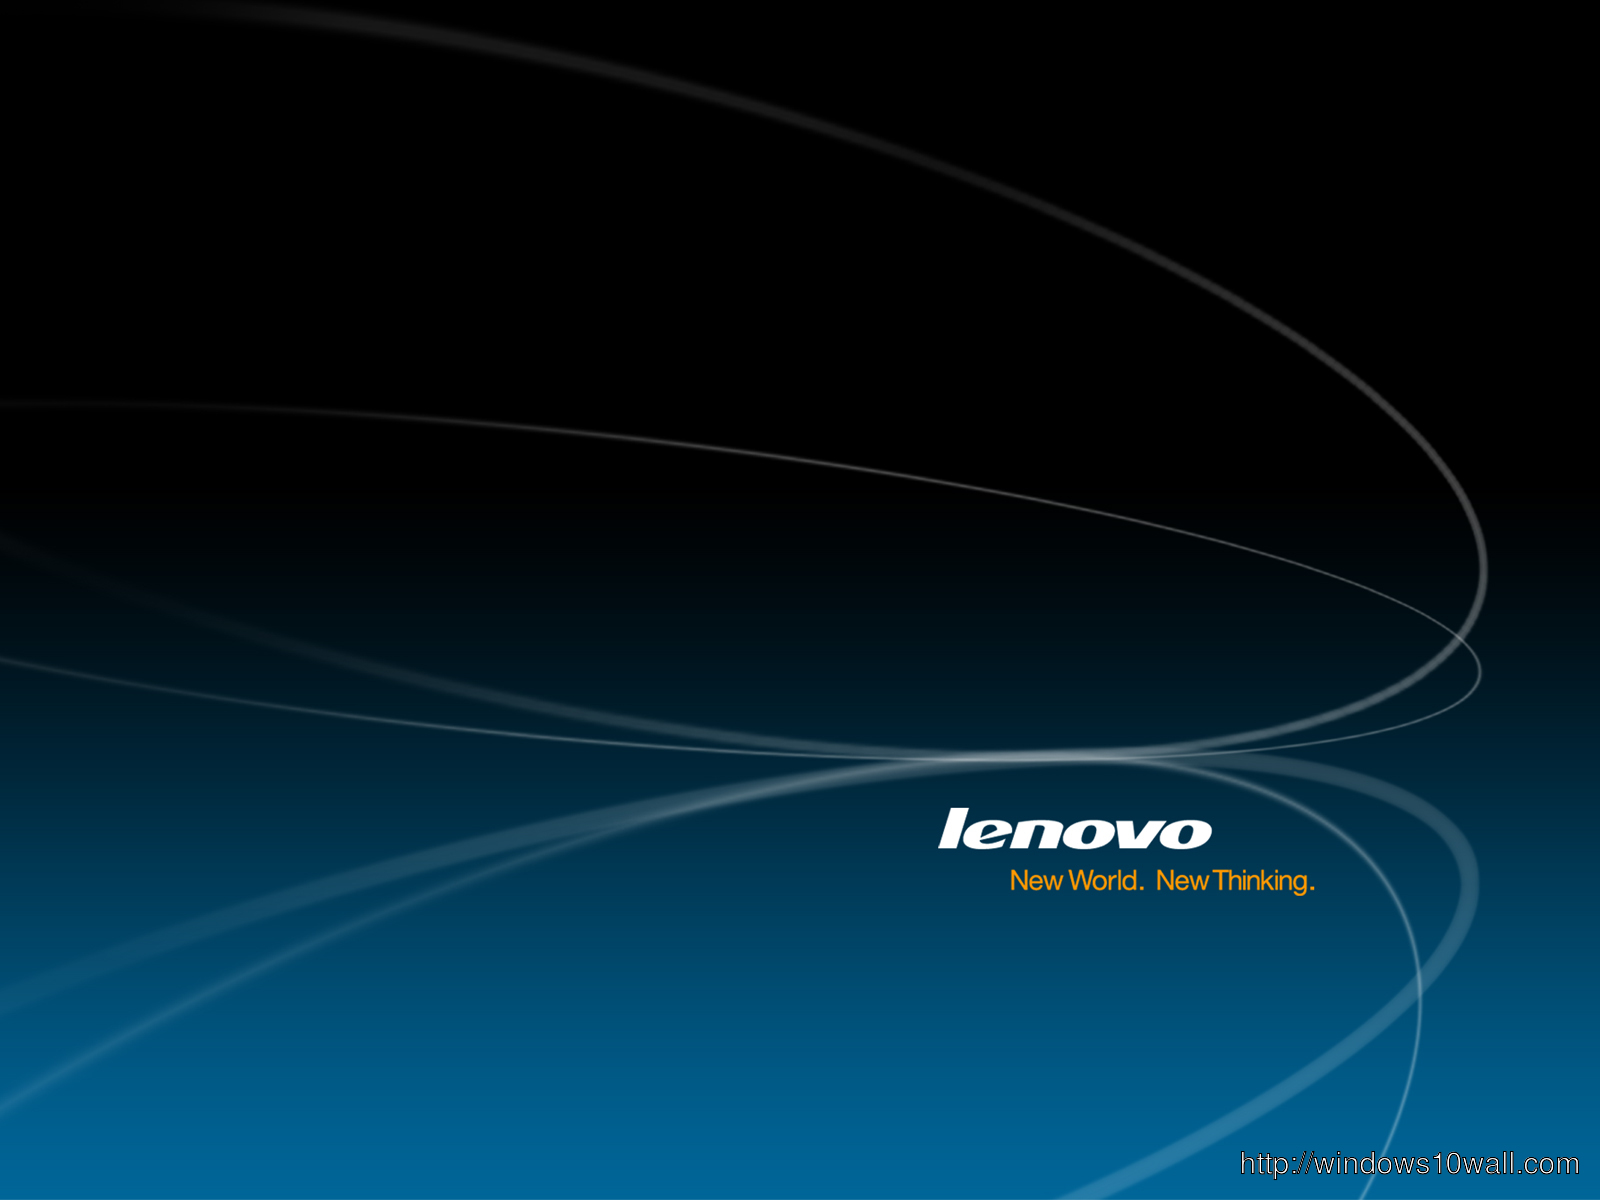 Lenovo Hi Resolution Dark Blue Black Wallpaper